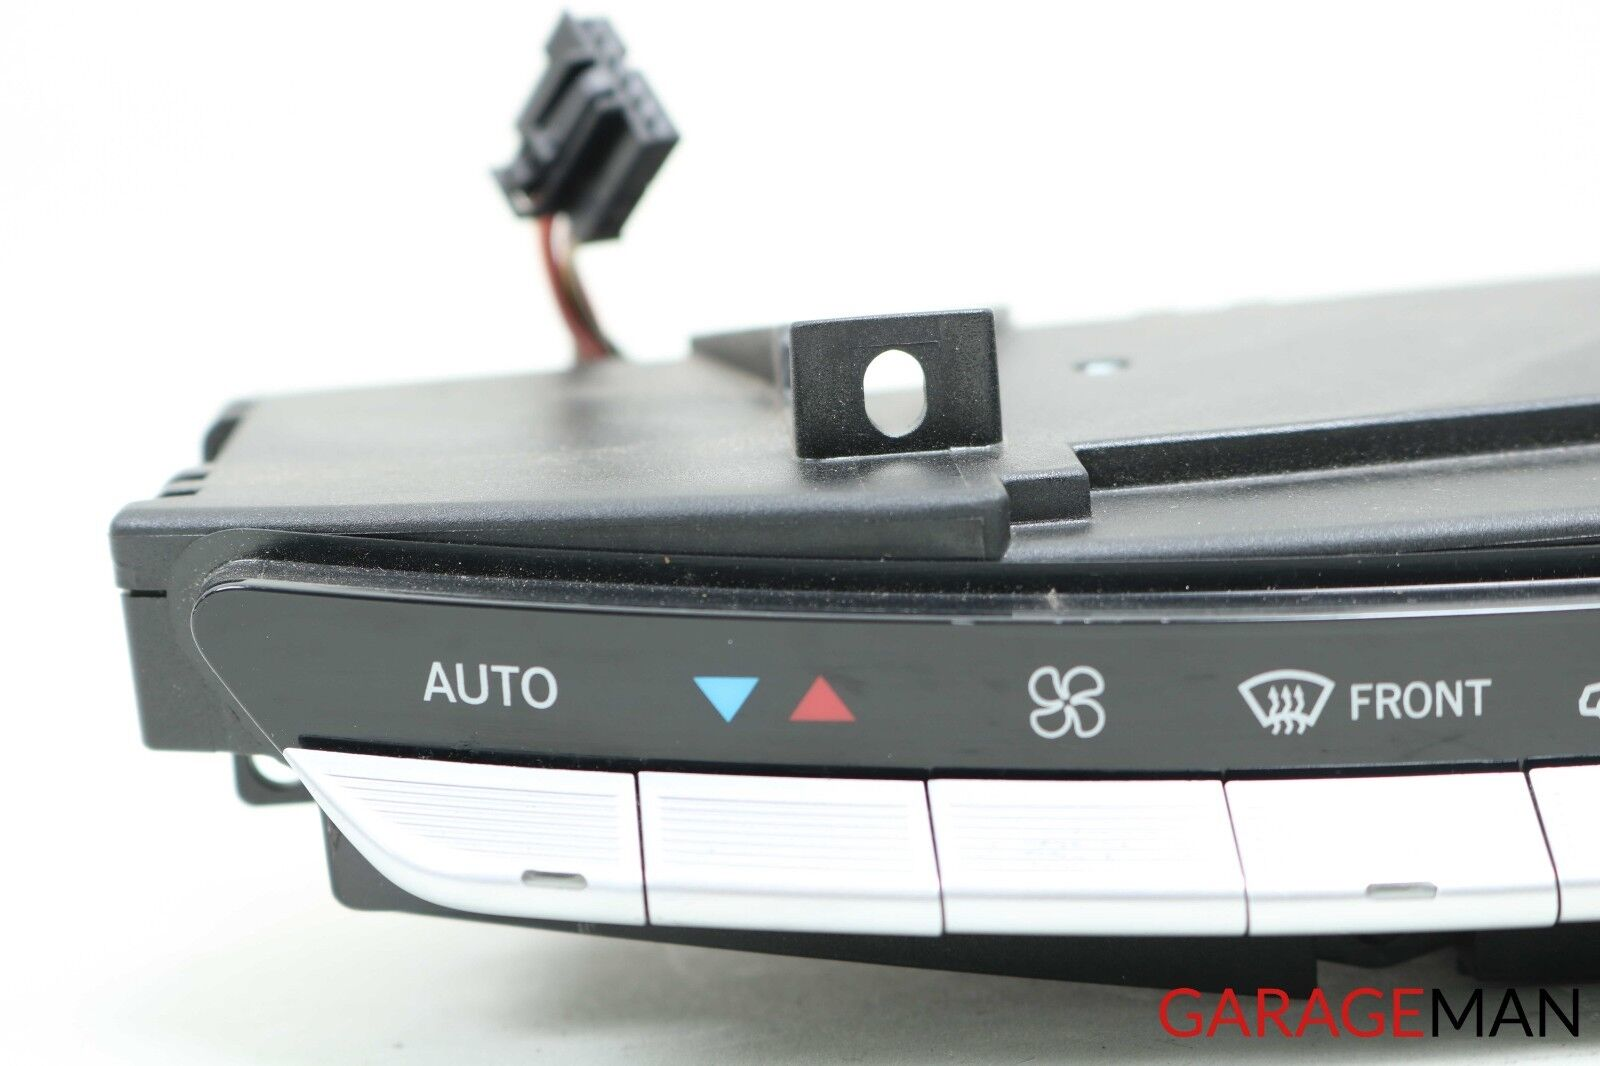 Used Mercedes-Benz S63 AMG A/C and Heater Controls for Sale